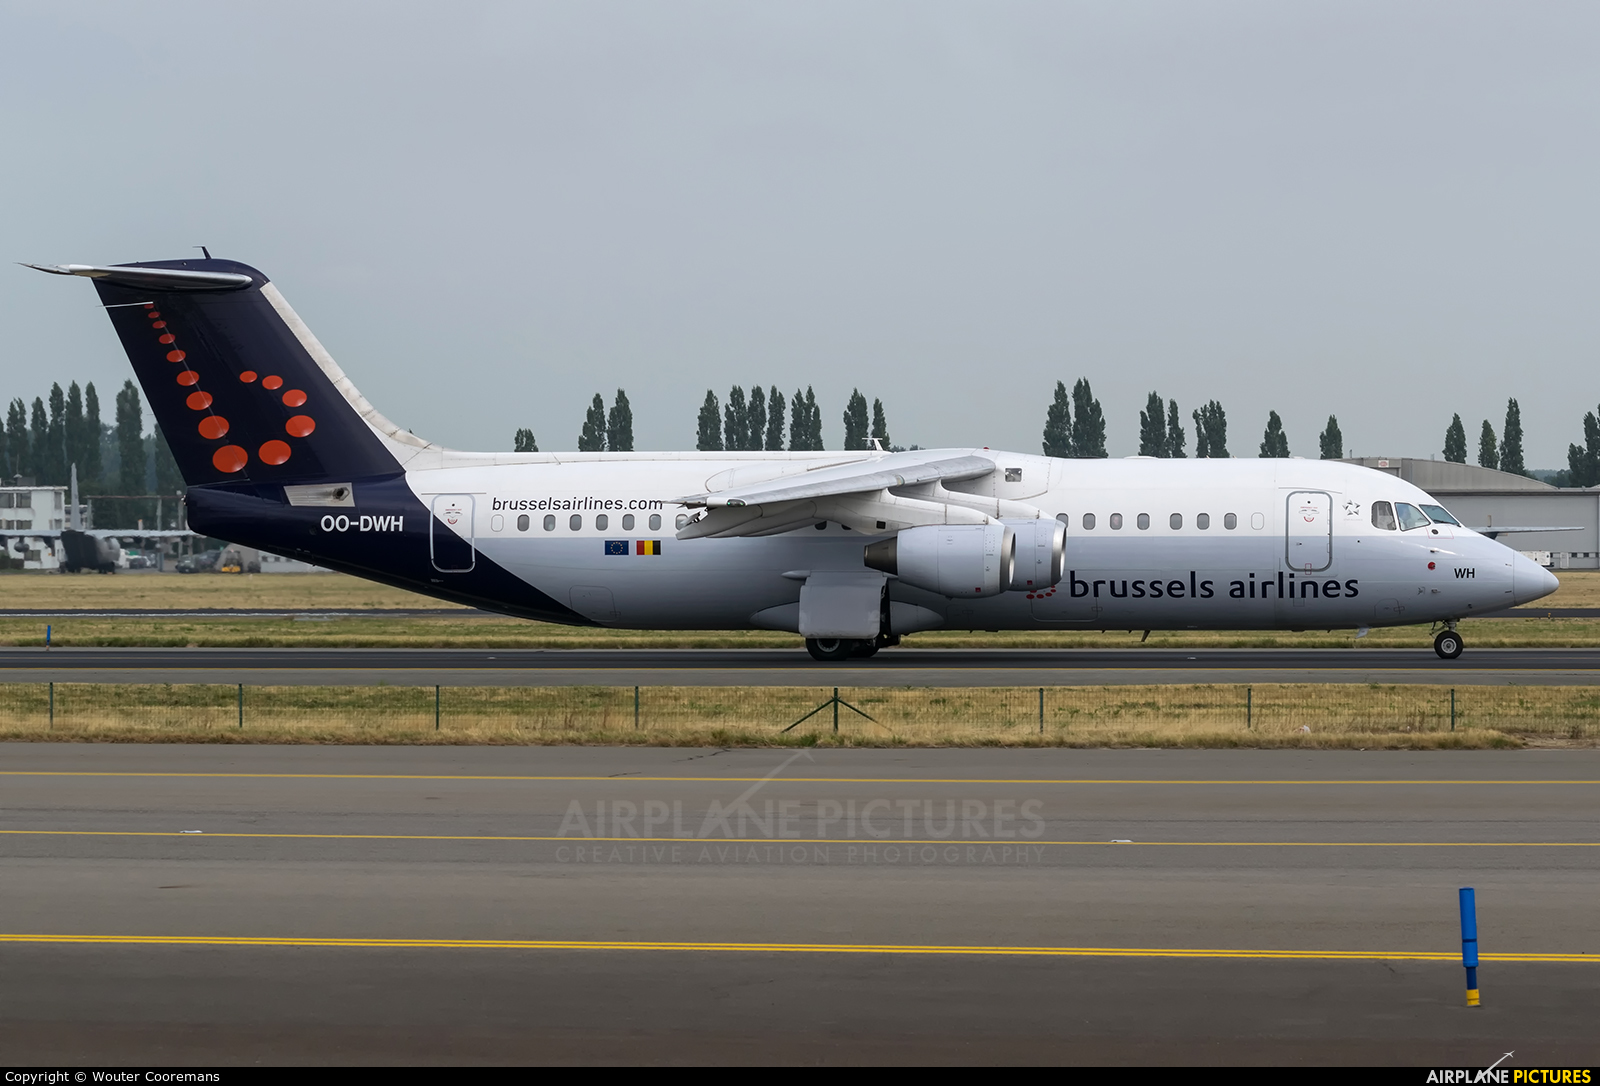 Brussels Airlines OO-DWH aircraft at Brussels - Zaventem